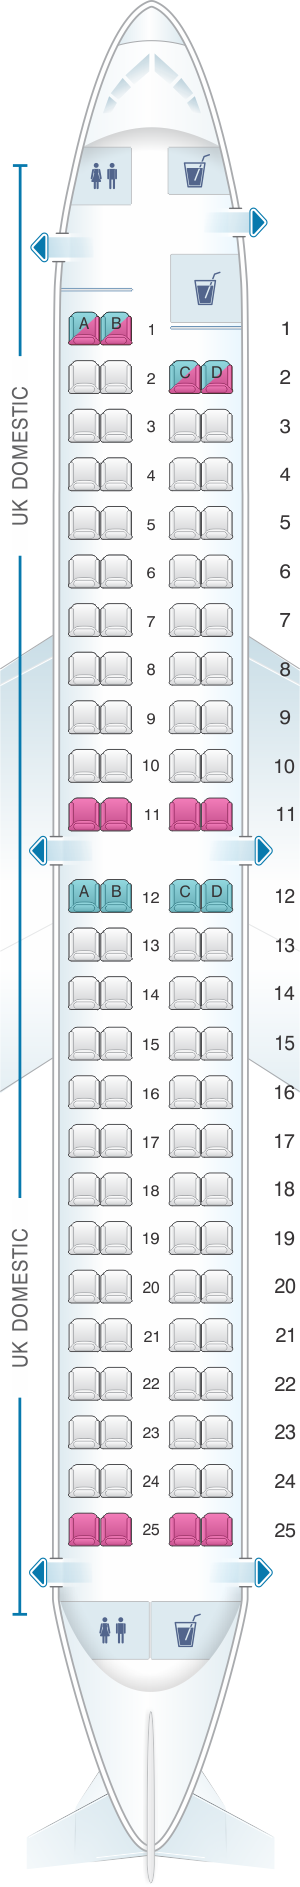 Seat map for British Airways Embraer 190 UK Domestic